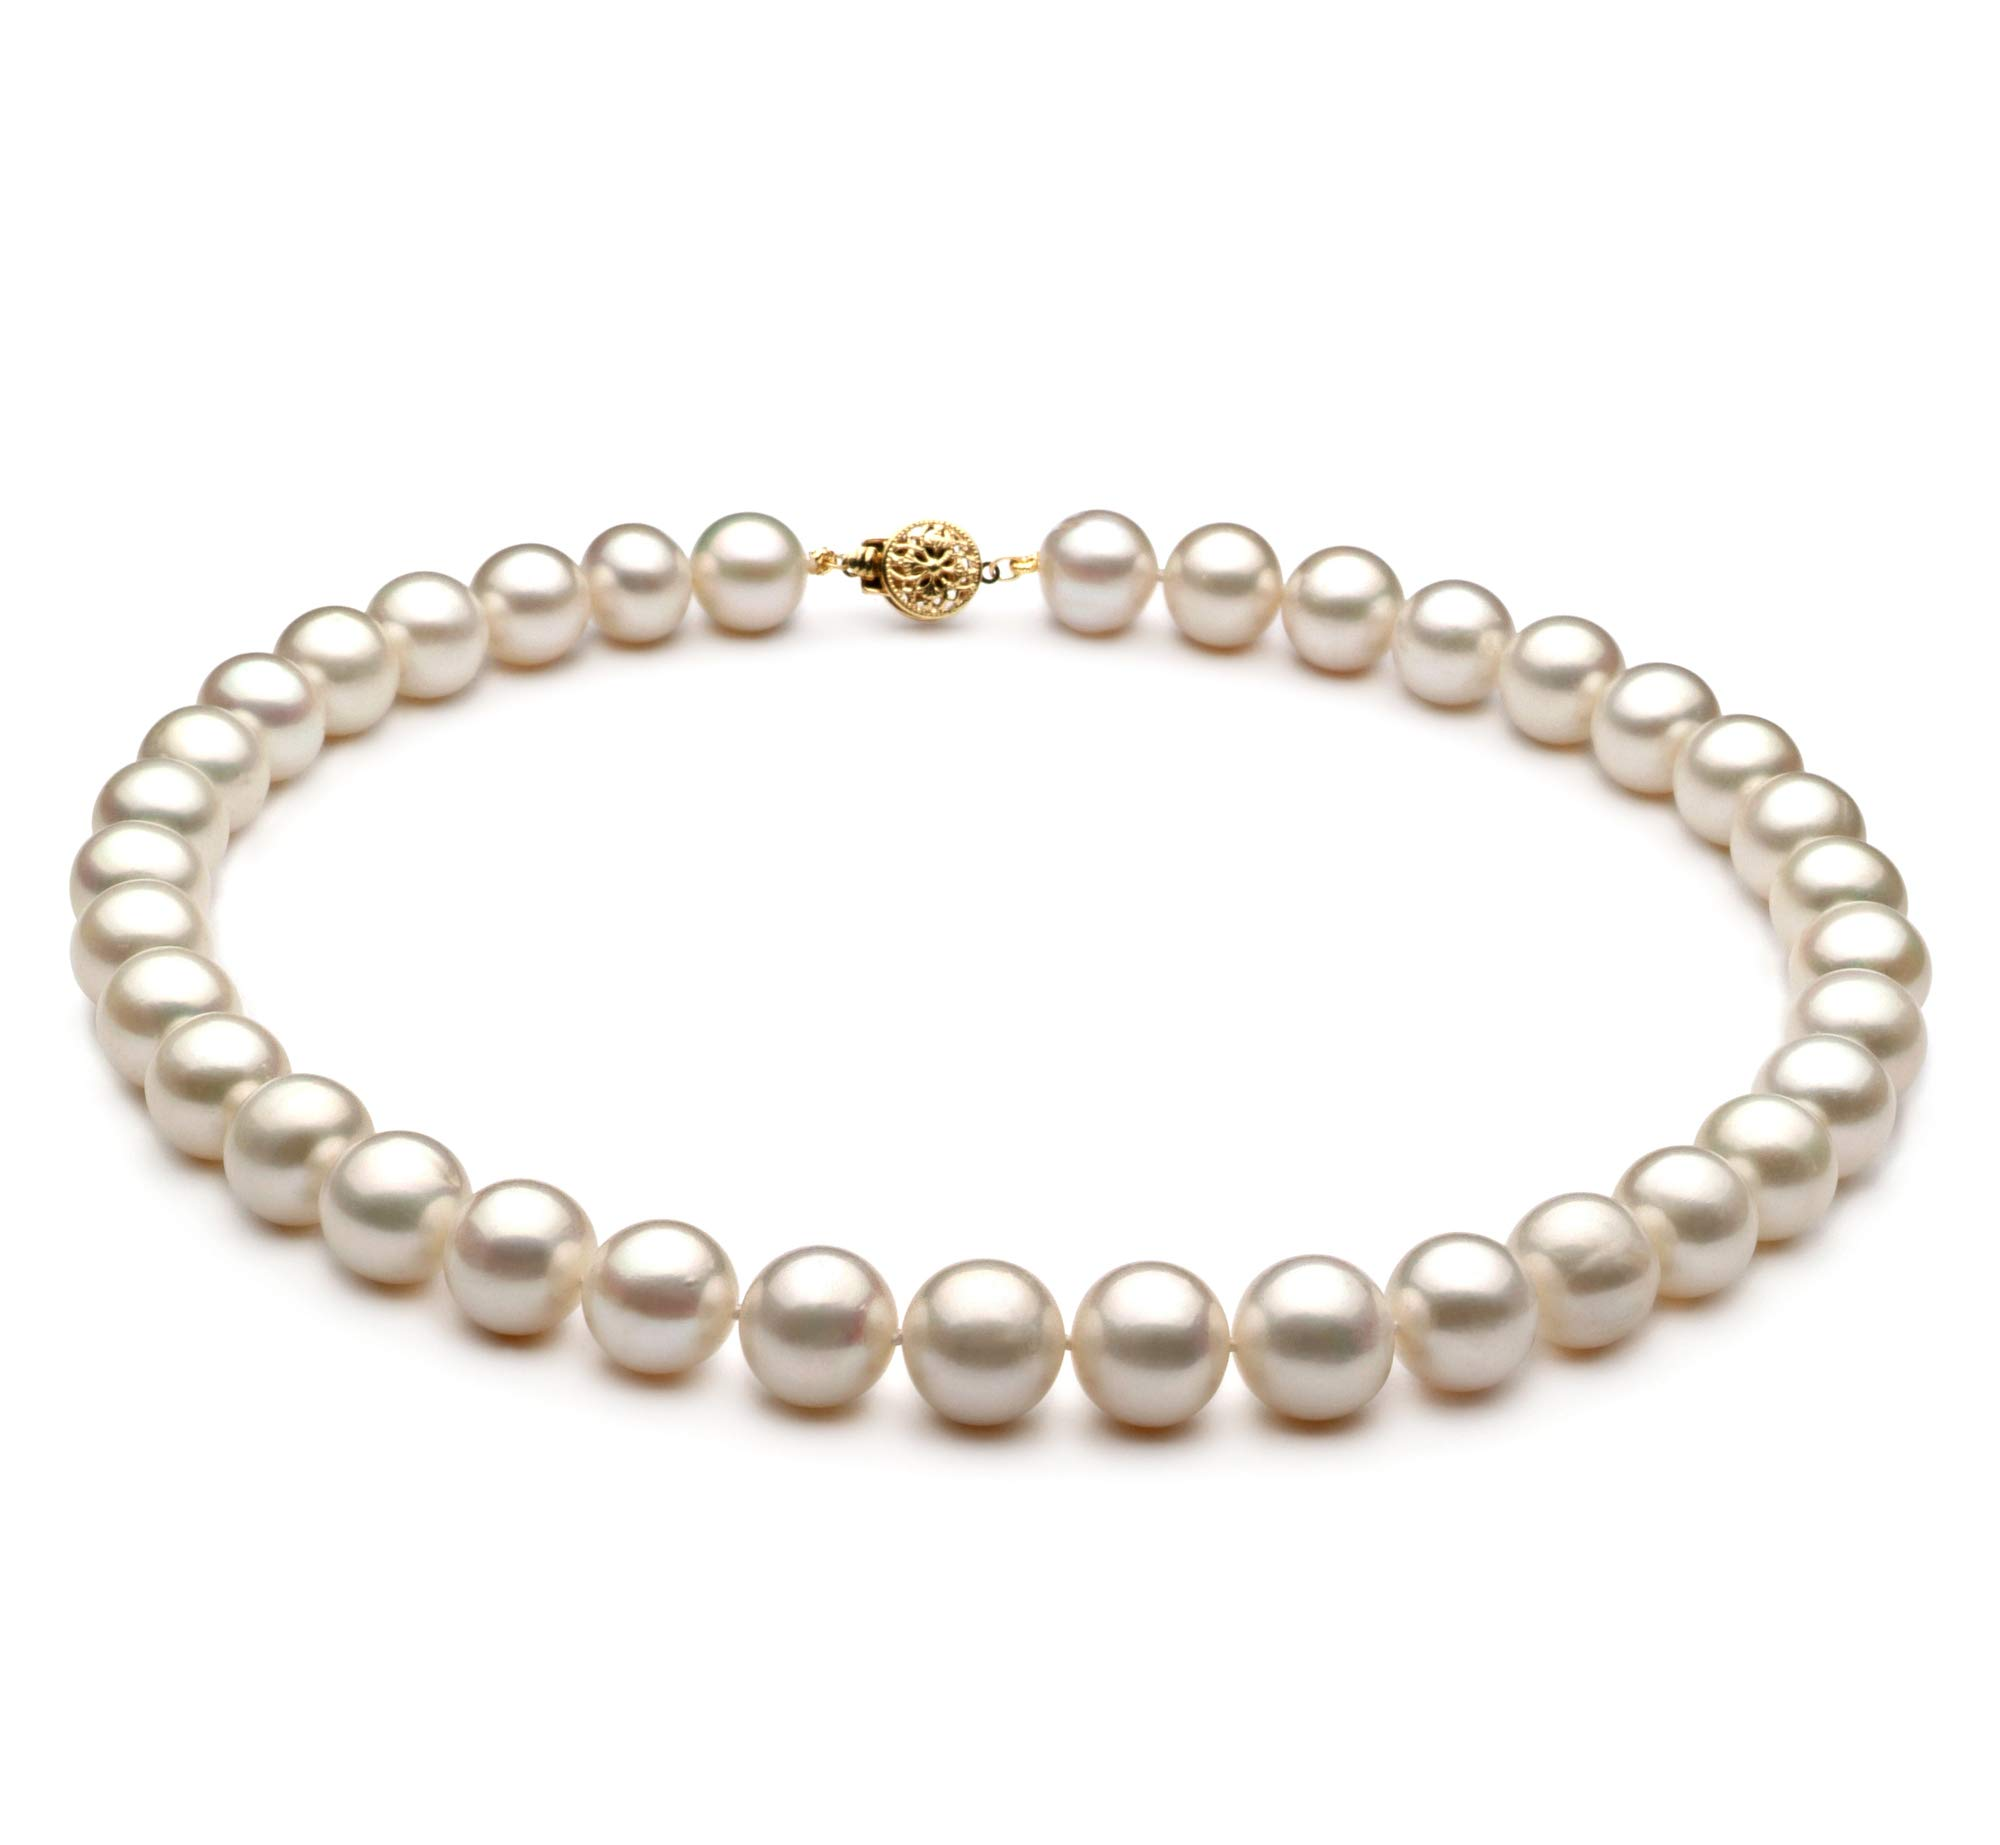 White 10-11mm AA Quality Freshwater Cultured Pearl Necklace for Women-16 in Chocker Length